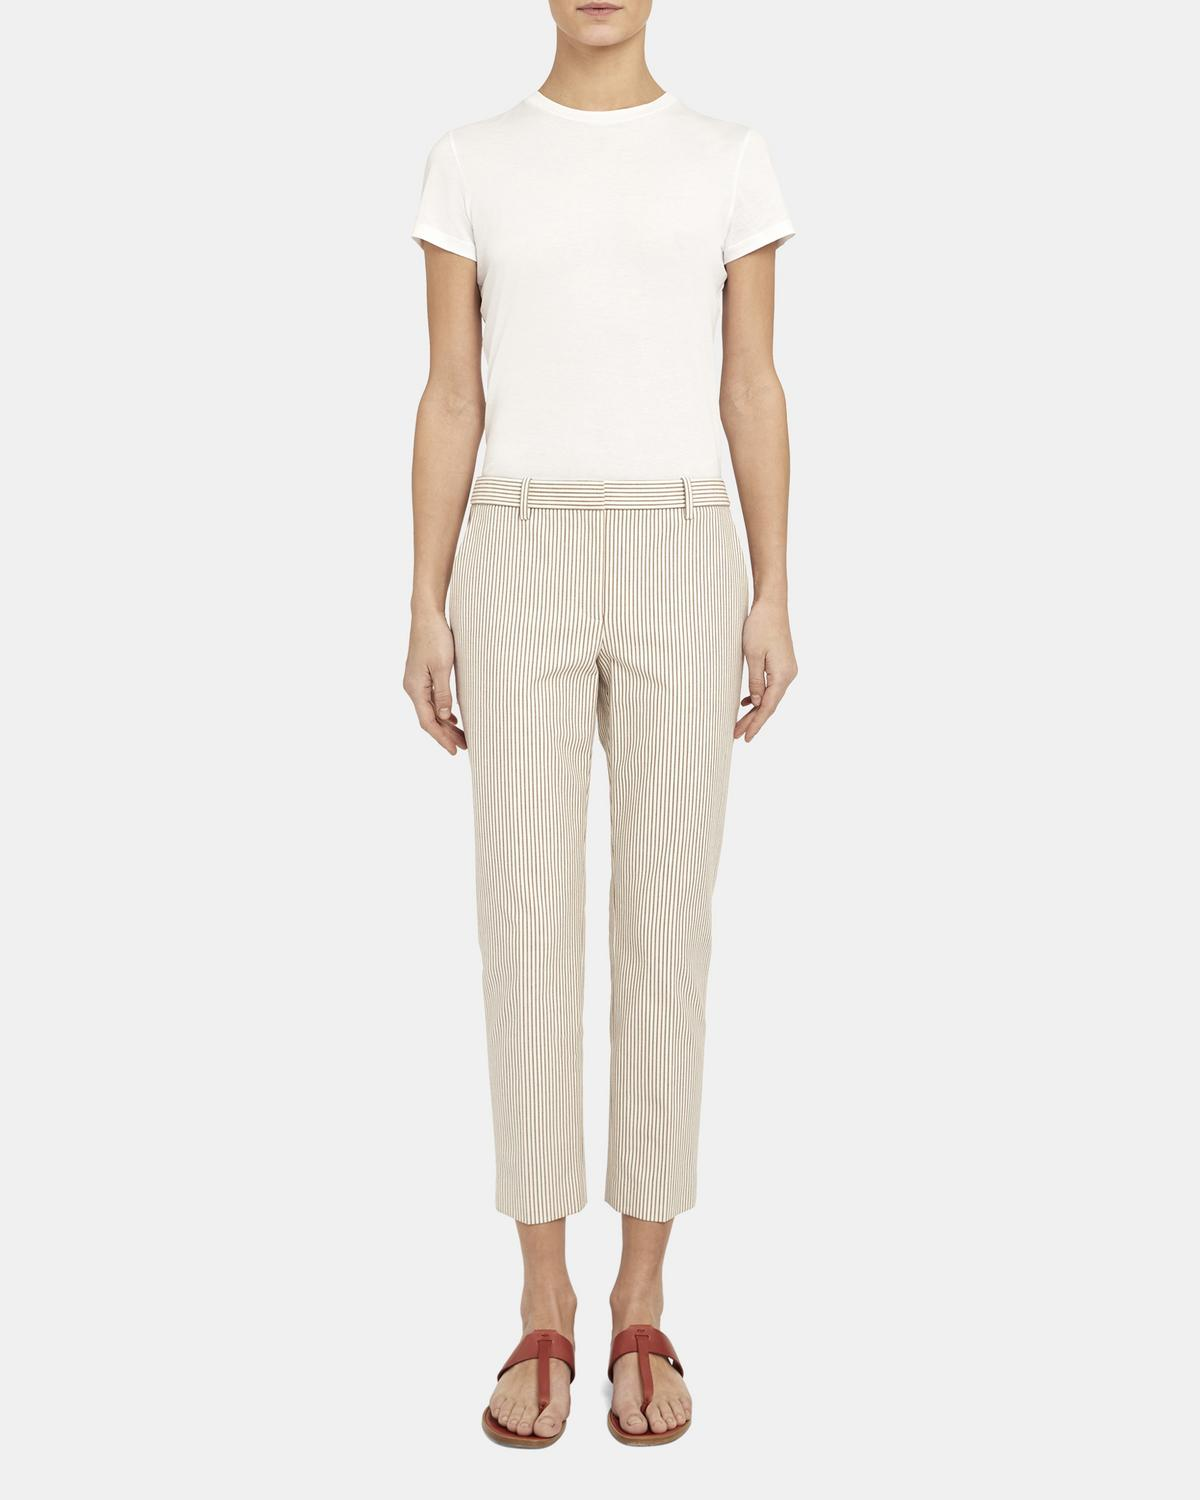 Treeca Pant in Striped Stretch Cotton 0 - click to view larger image